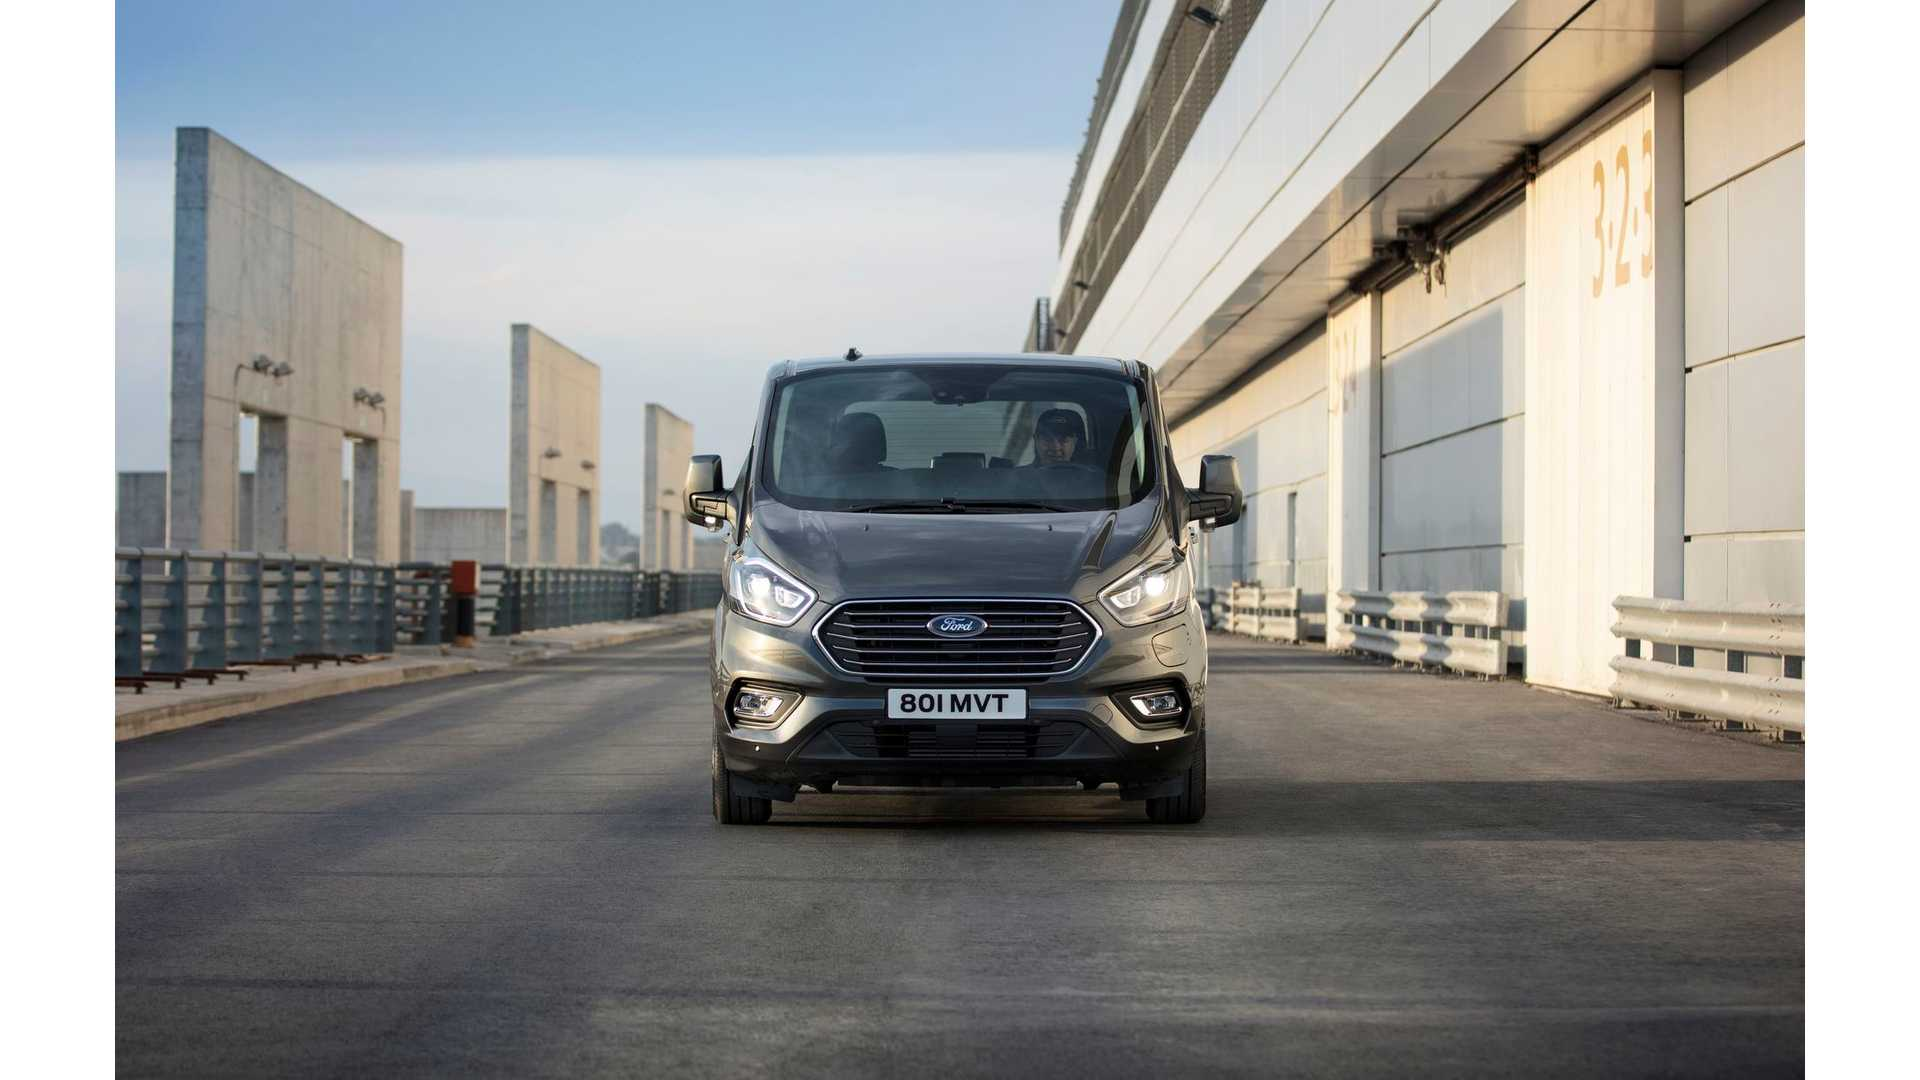 Ford Tourneo Custom Plug-in Hybrid Van To Launch In Late 2019